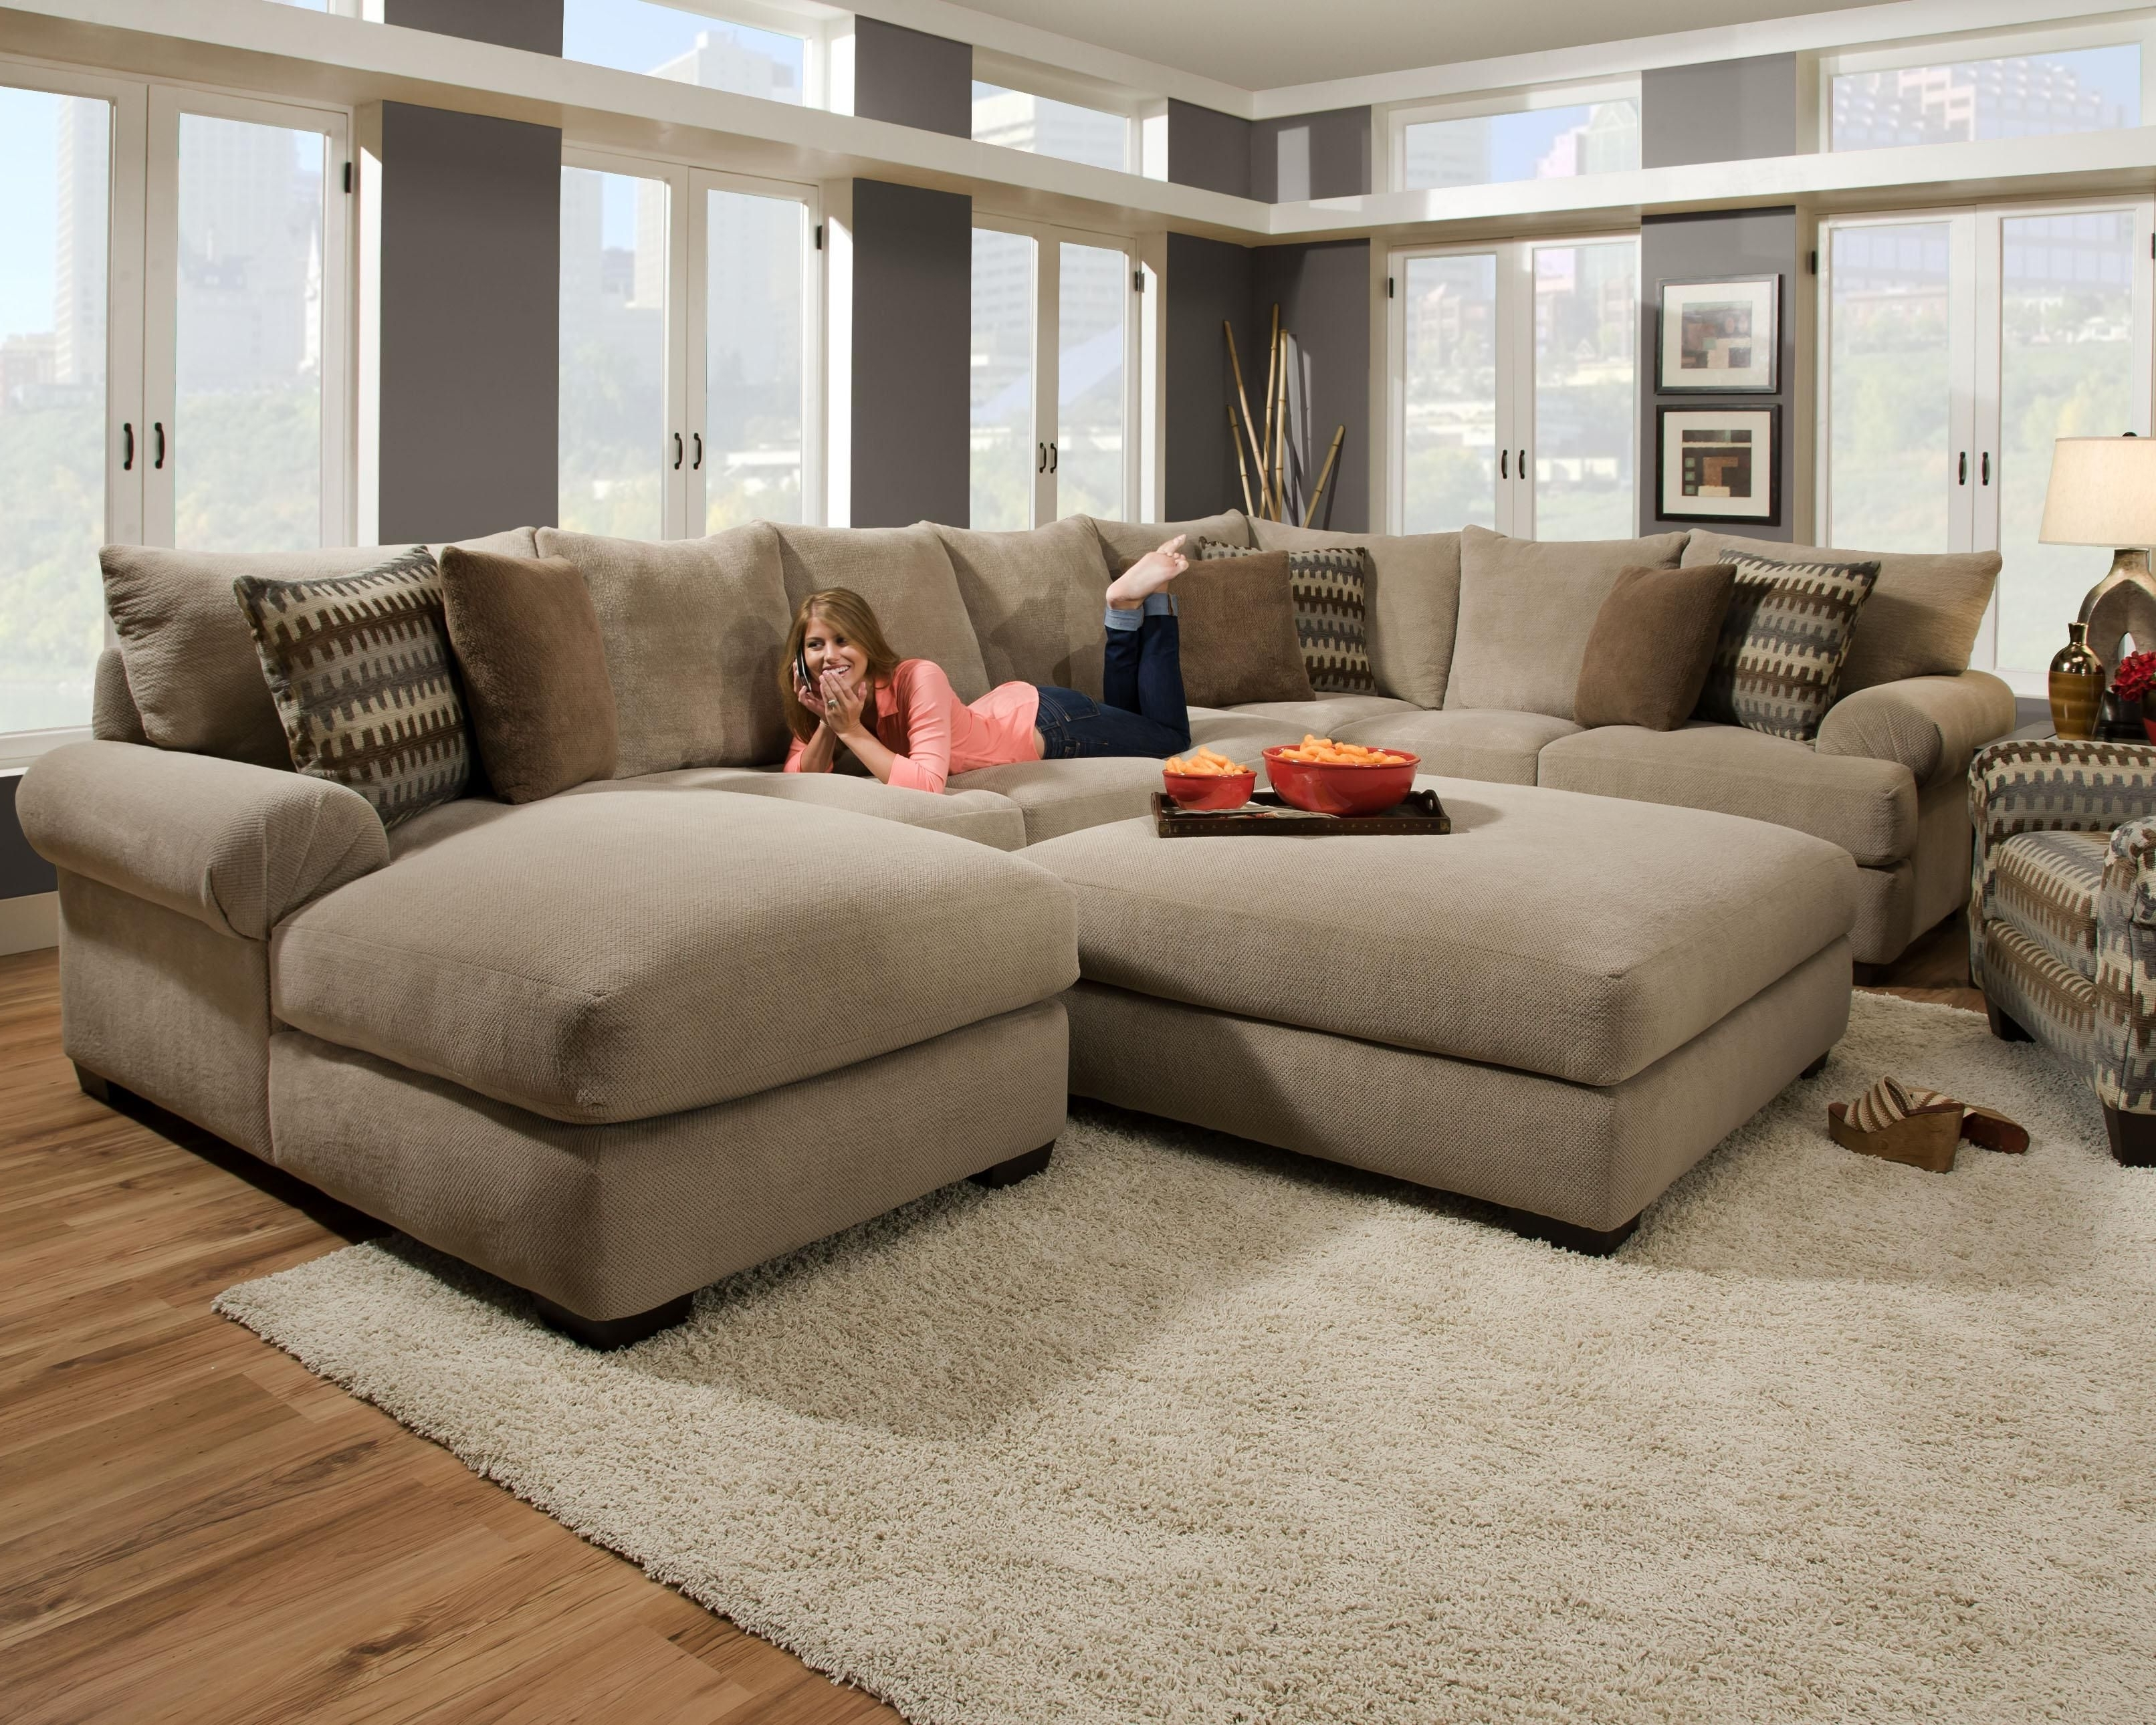 Couches With Large Ottoman Within 2018 Furniture Design Idea For Living Room And Oversized U Shaped (View 4 of 20)